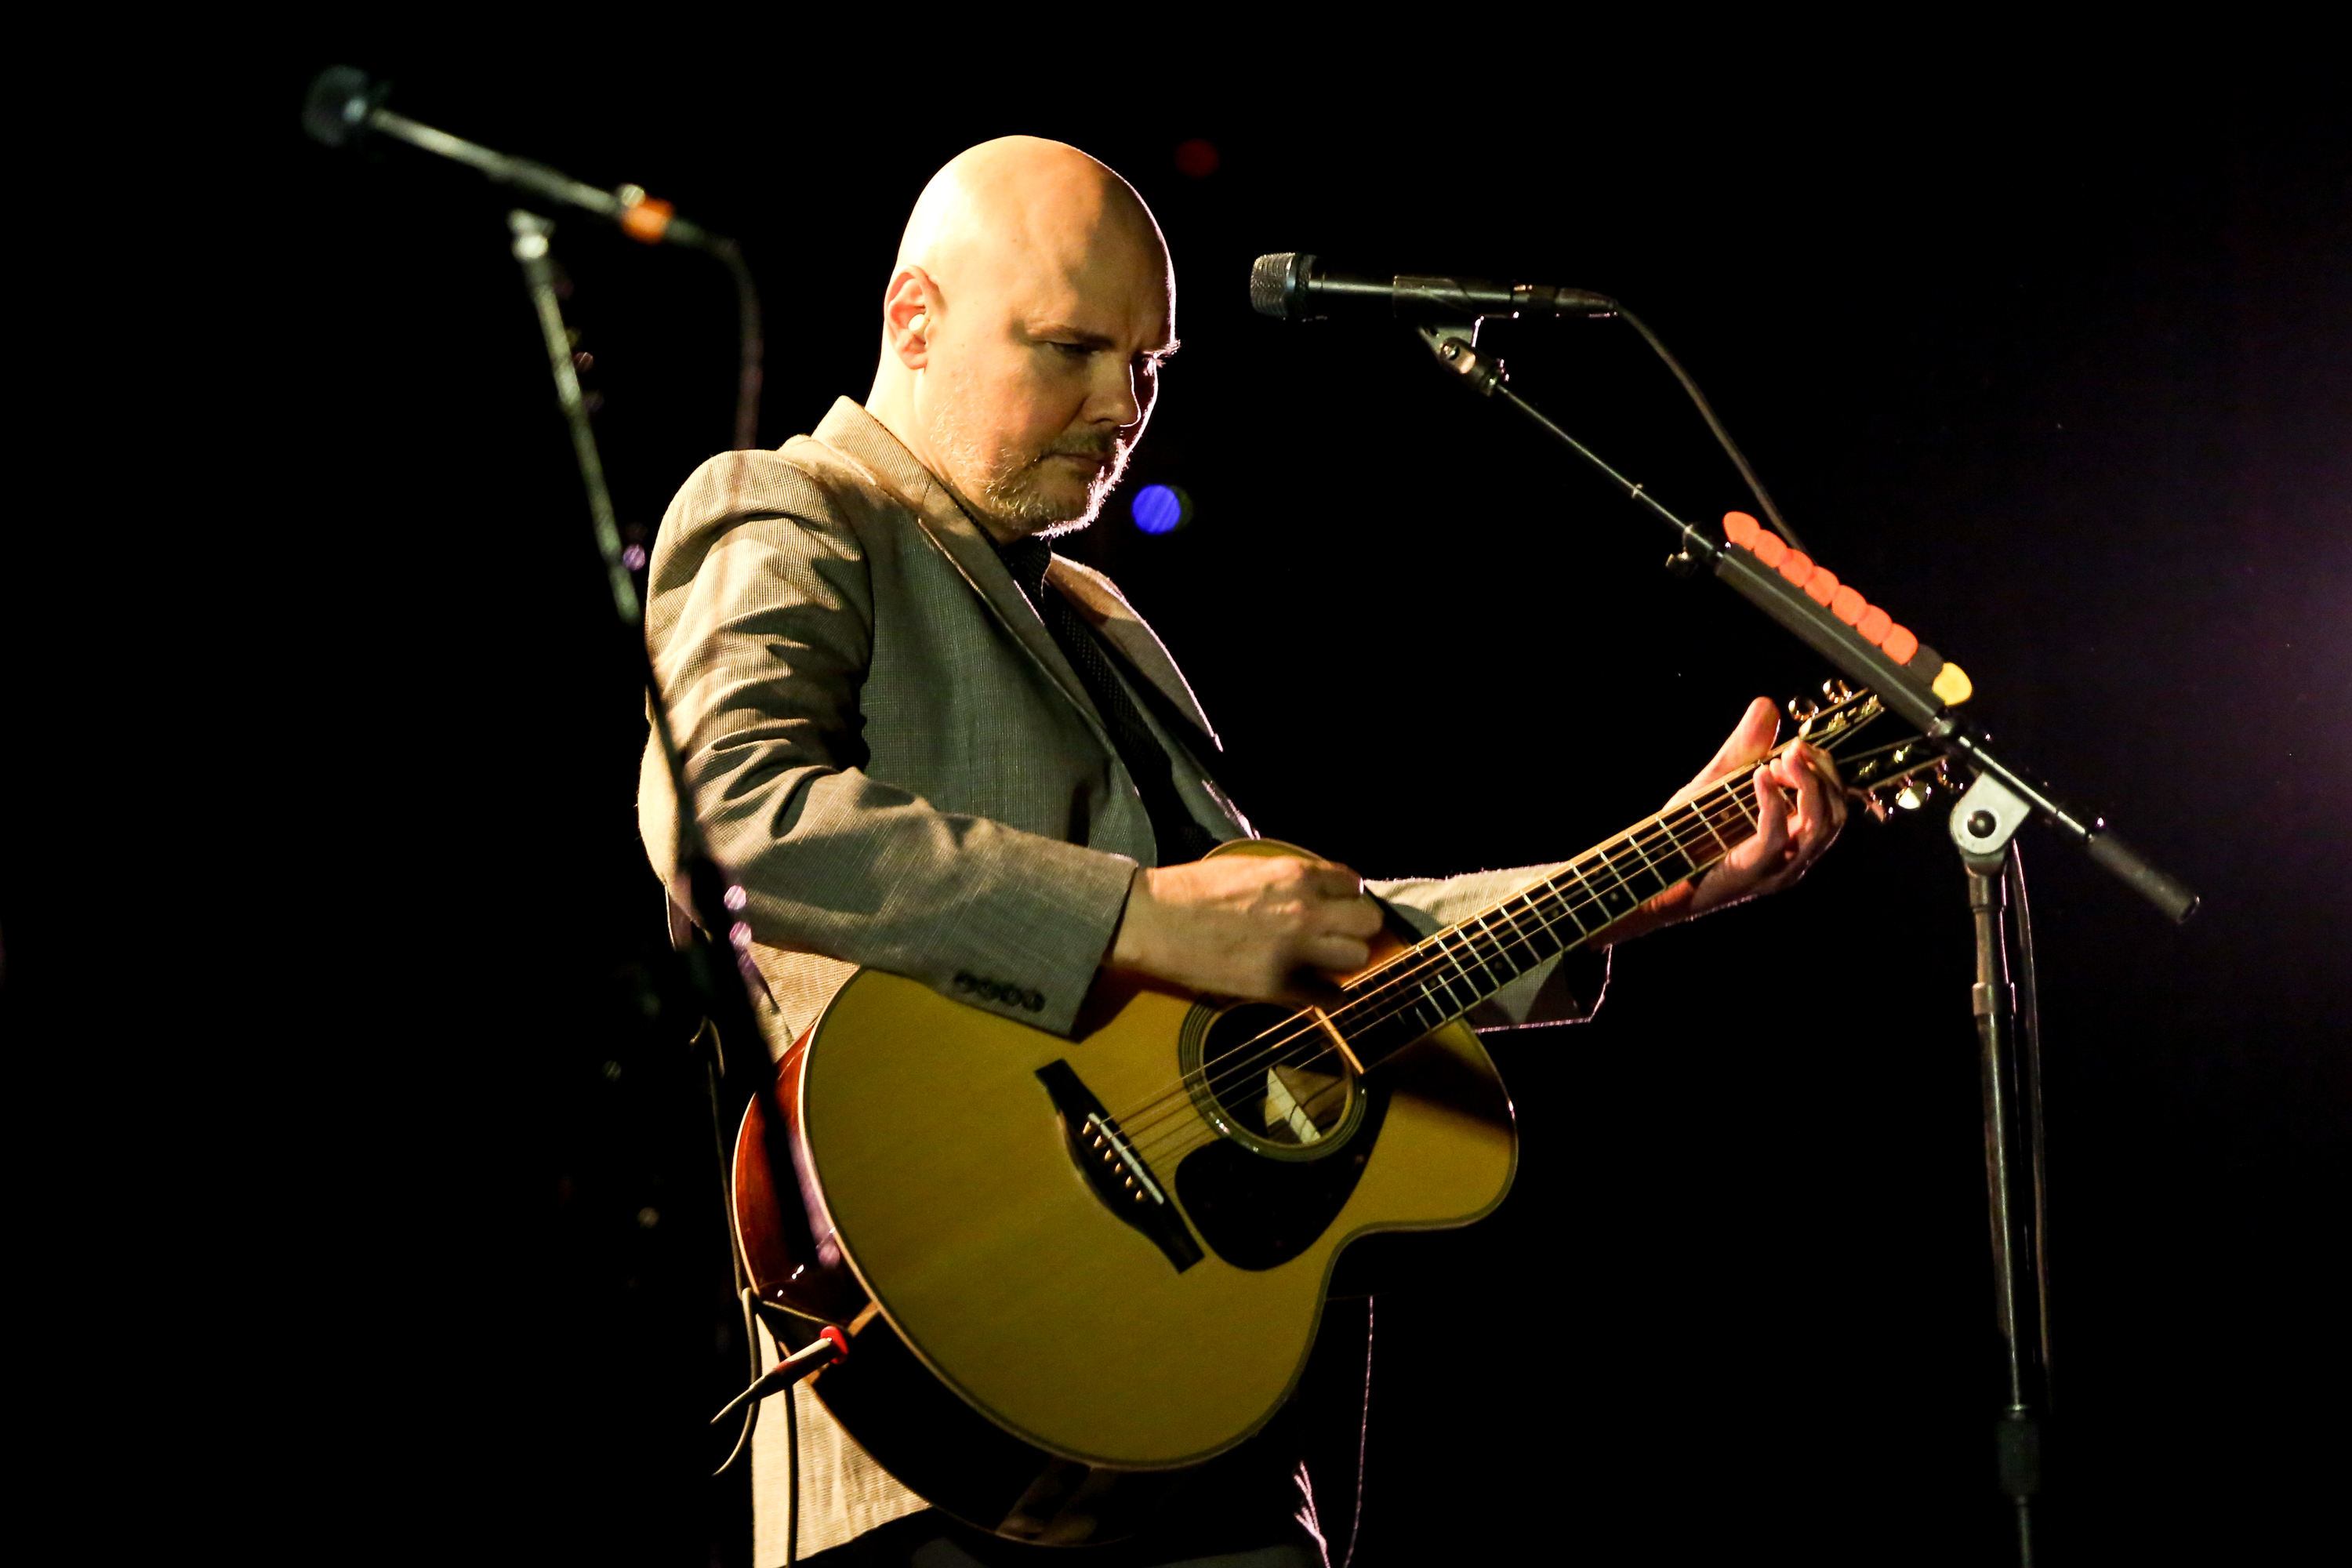 Billy Corgan on D'arcy Wretzky: 'Encouraged to Hear That She Is Playing Music'